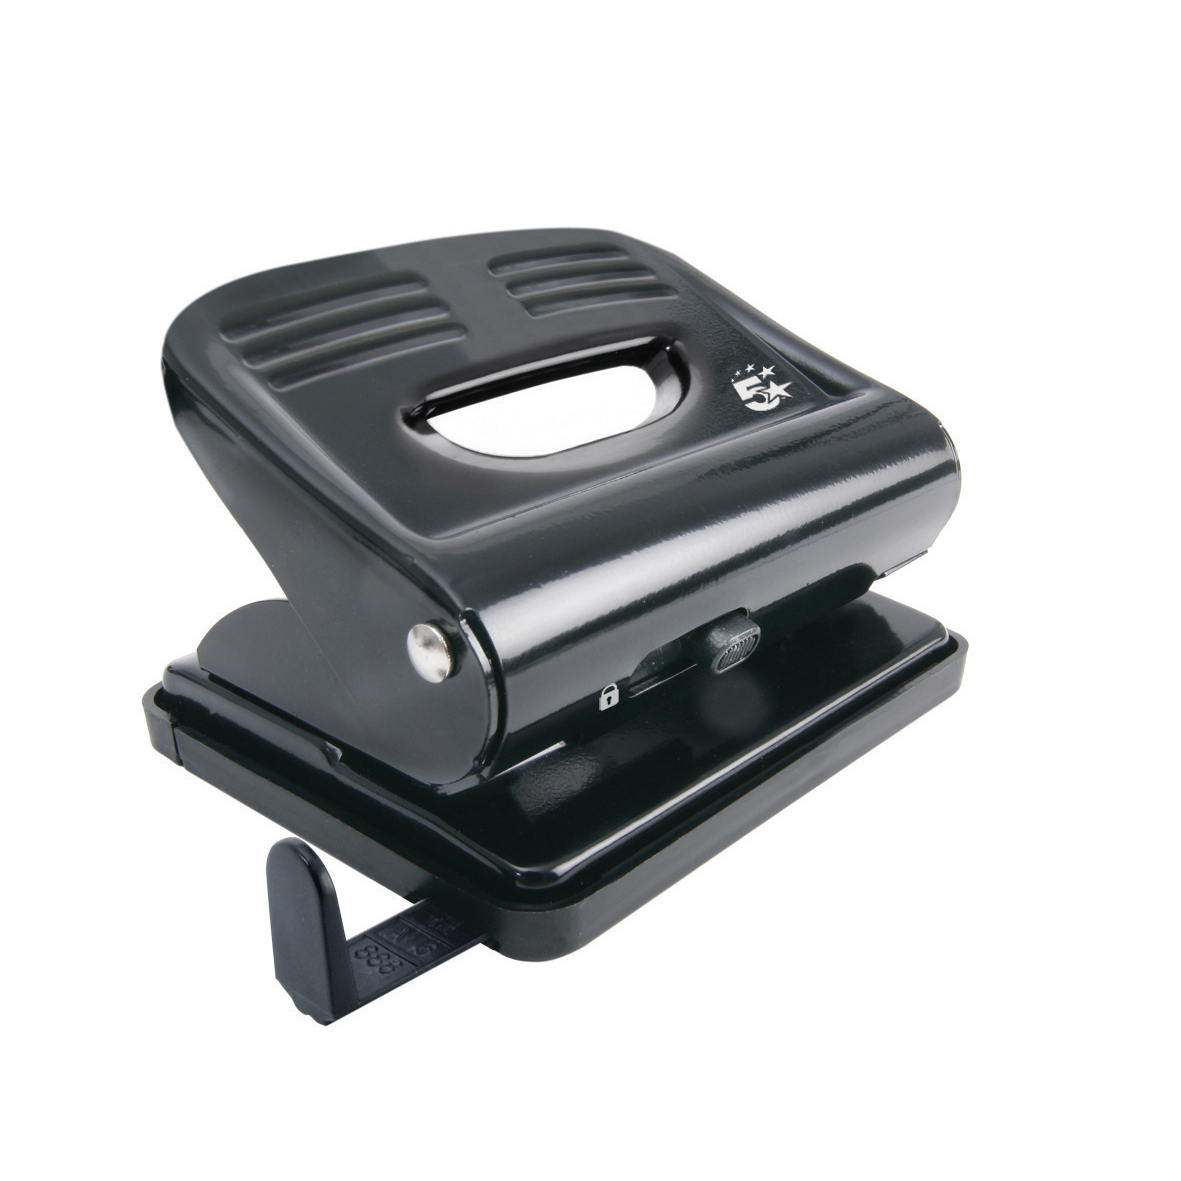 5 Star Office Punch 2-Hole Plastic Base Metal Handle Capacity 18x 80gsm Black